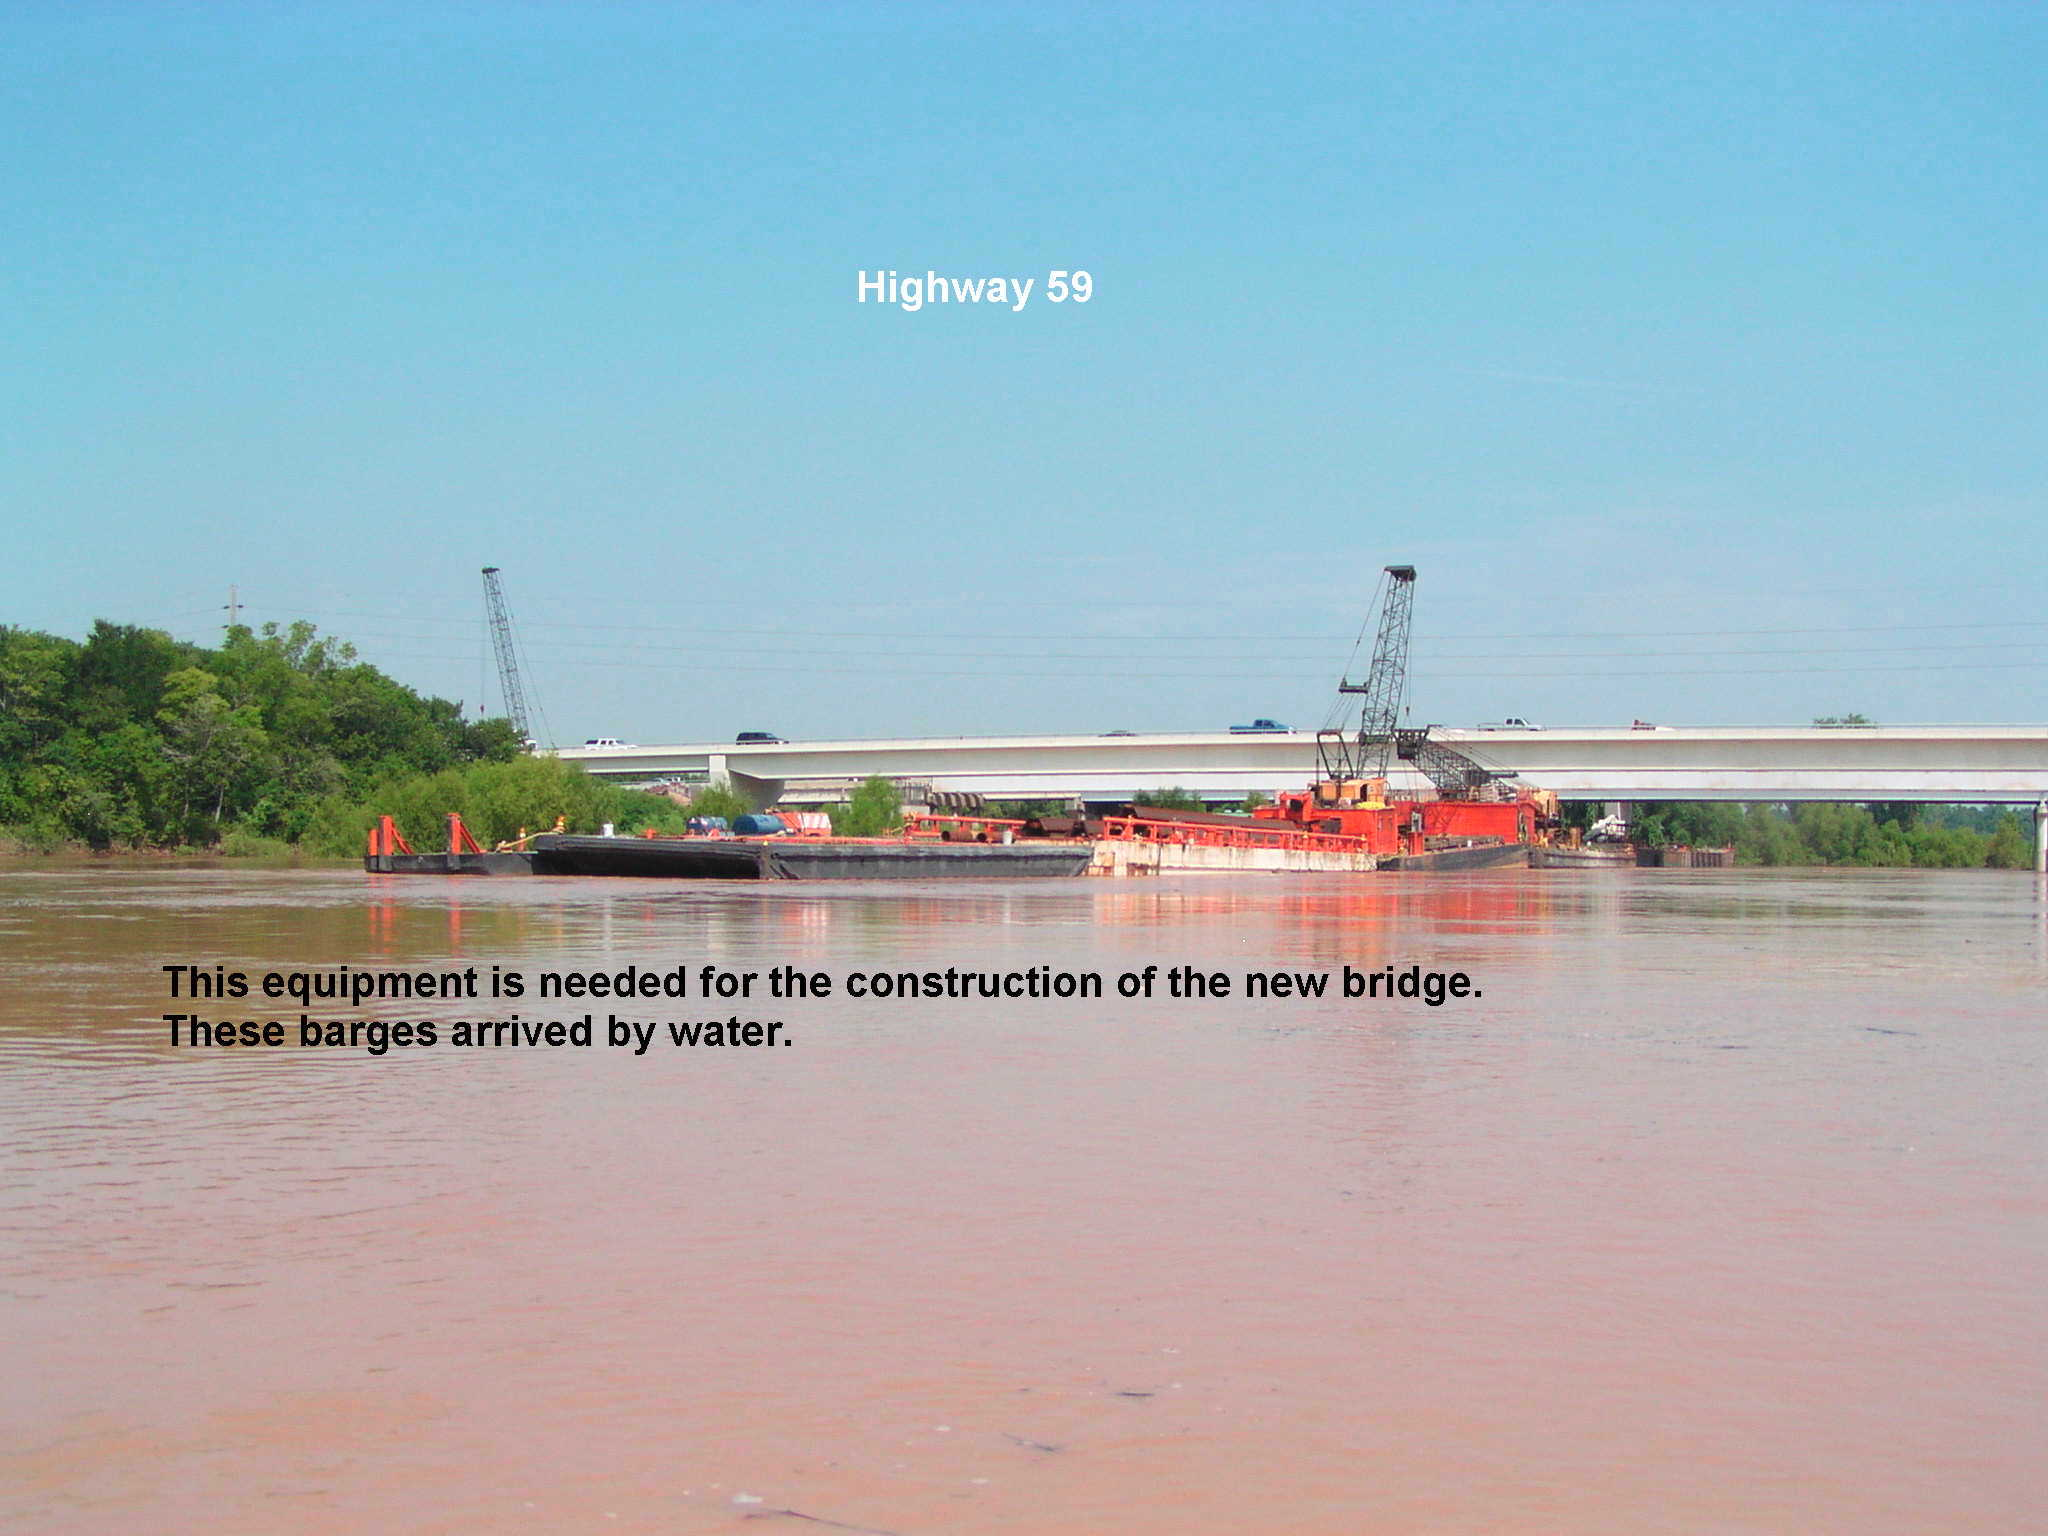 The construction of additional lanes for Hwy 59 over the Brazos River.